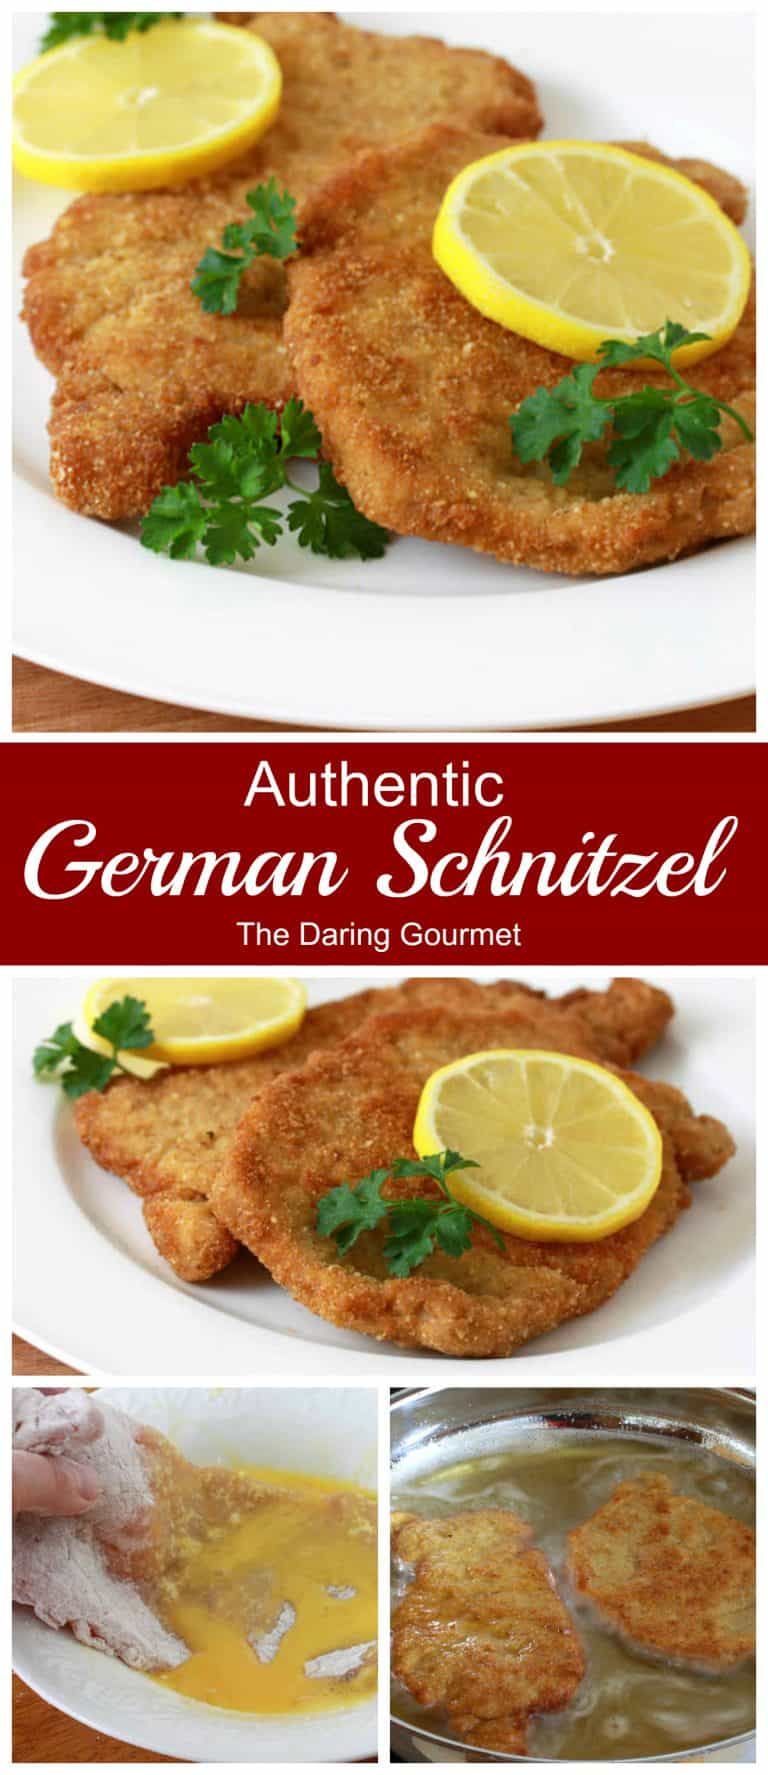 schnitzel recipe pork german austrian authentic traditional